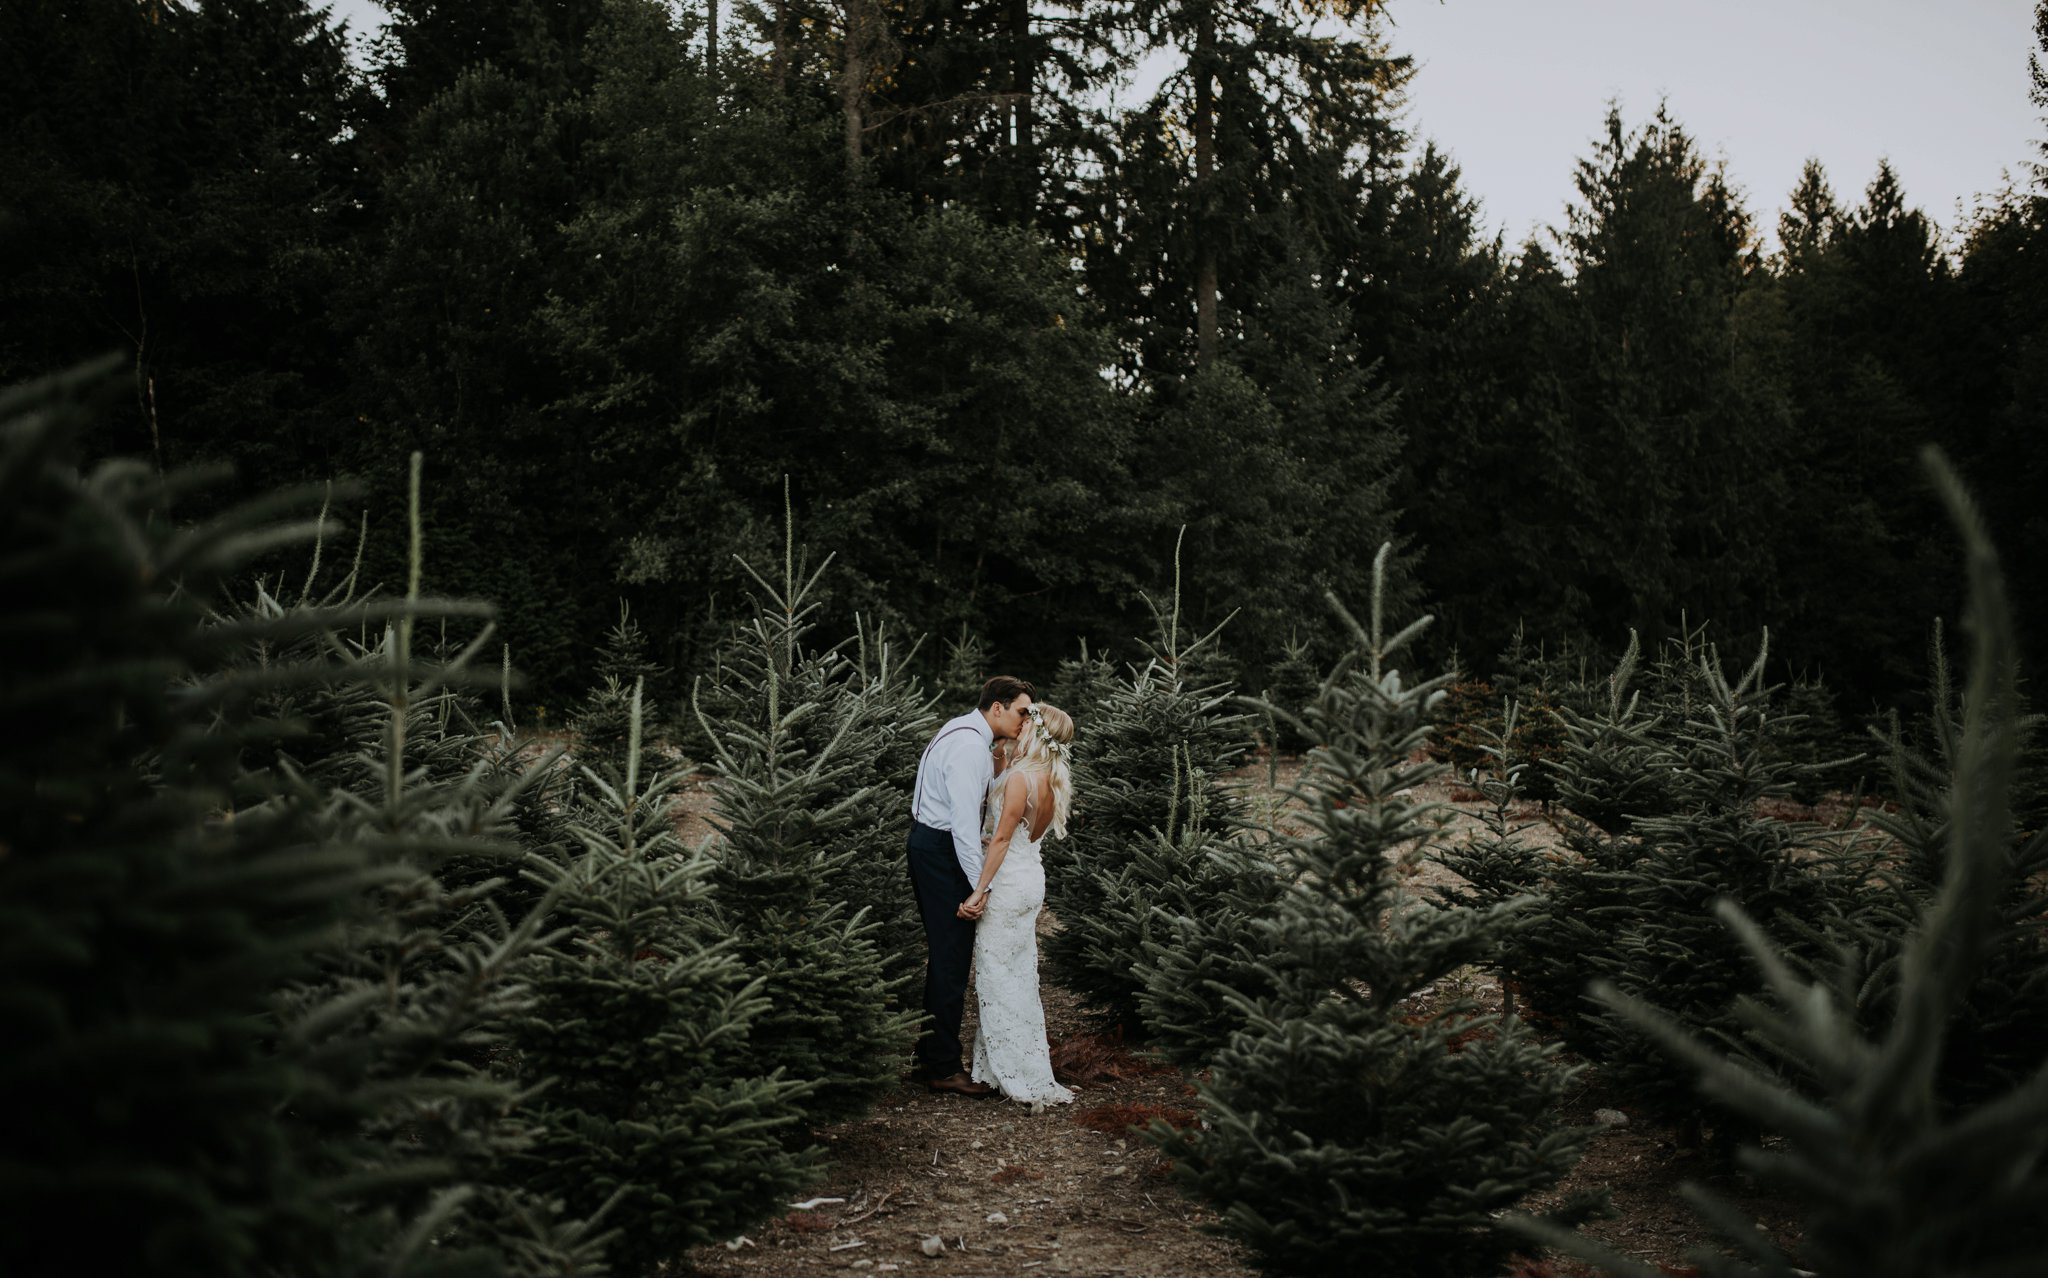 trinity-tree-farm-issaquah-washington-wedding-seattle-lifestyle-photographer-caitlyn-nikula-photography-102.jpg